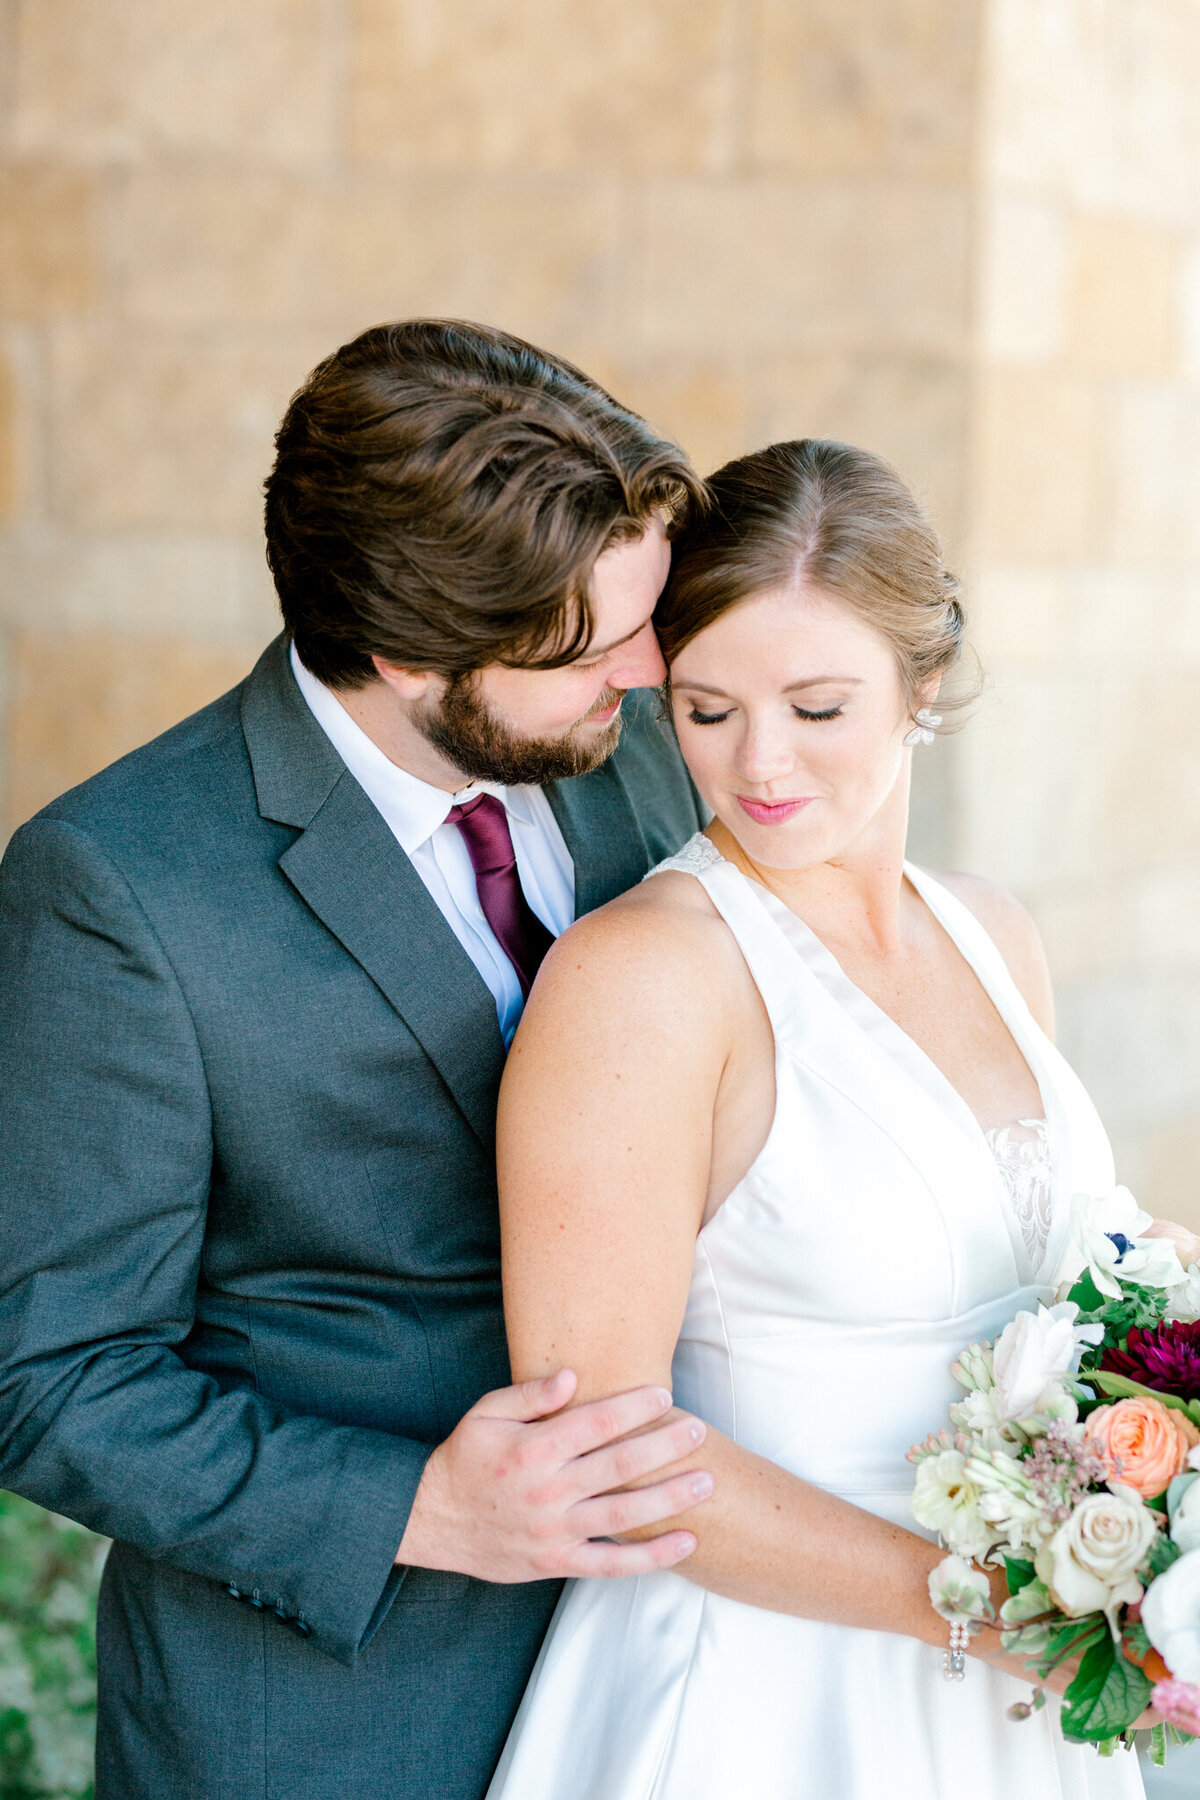 Kaylee & Michael's Wedding at Watermark Community Church | Dallas Wedding Photographer | Sami Kathryn Photography-55